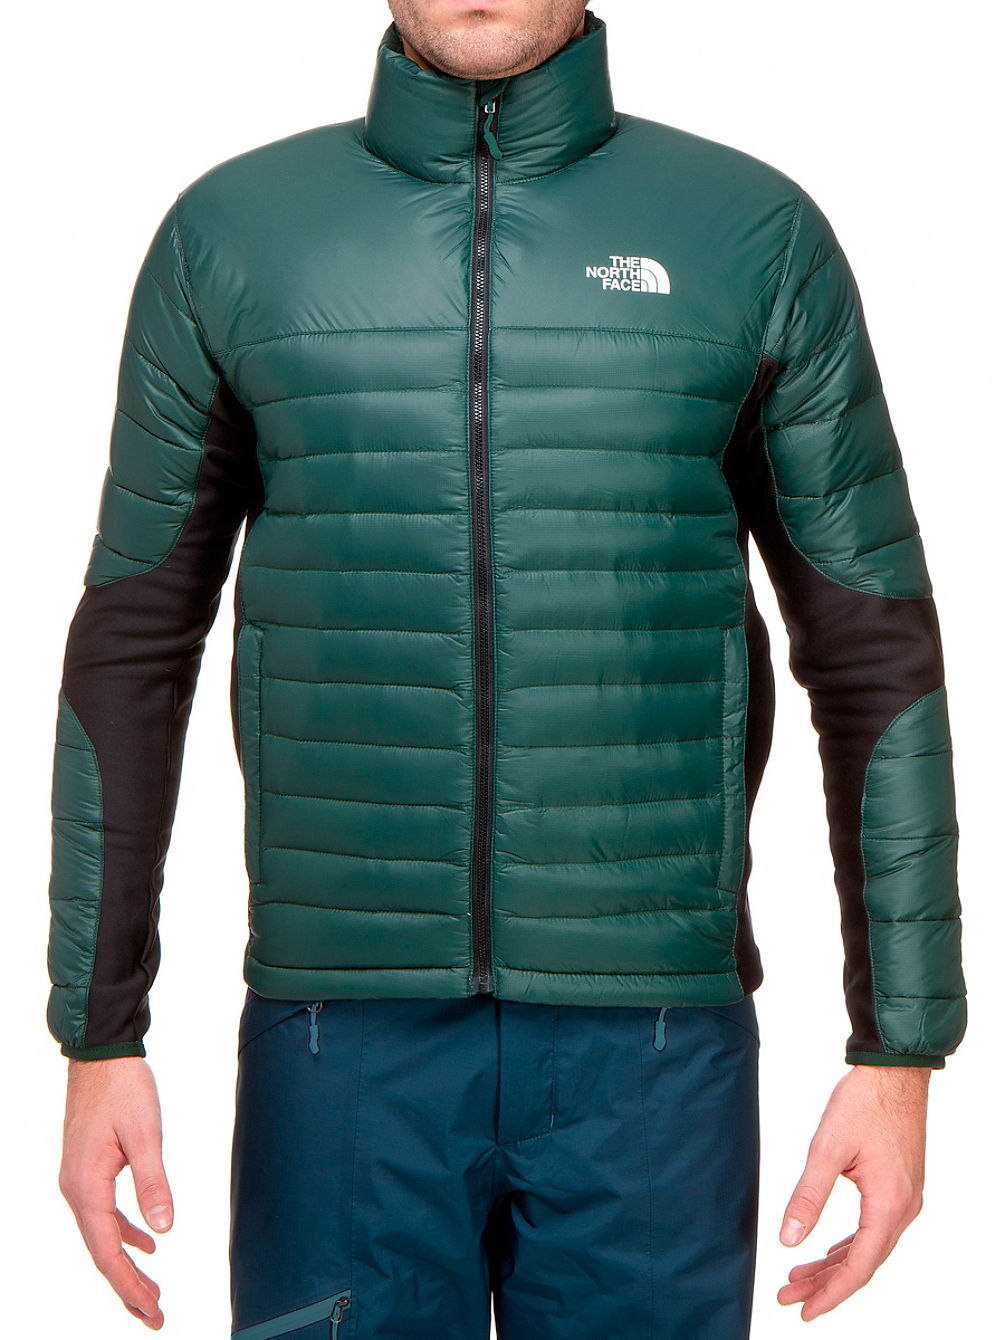 9cdc6579afb9 Buy THE NORTH FACE Crimptastic Hybrid Jacket online at Blue Tomato